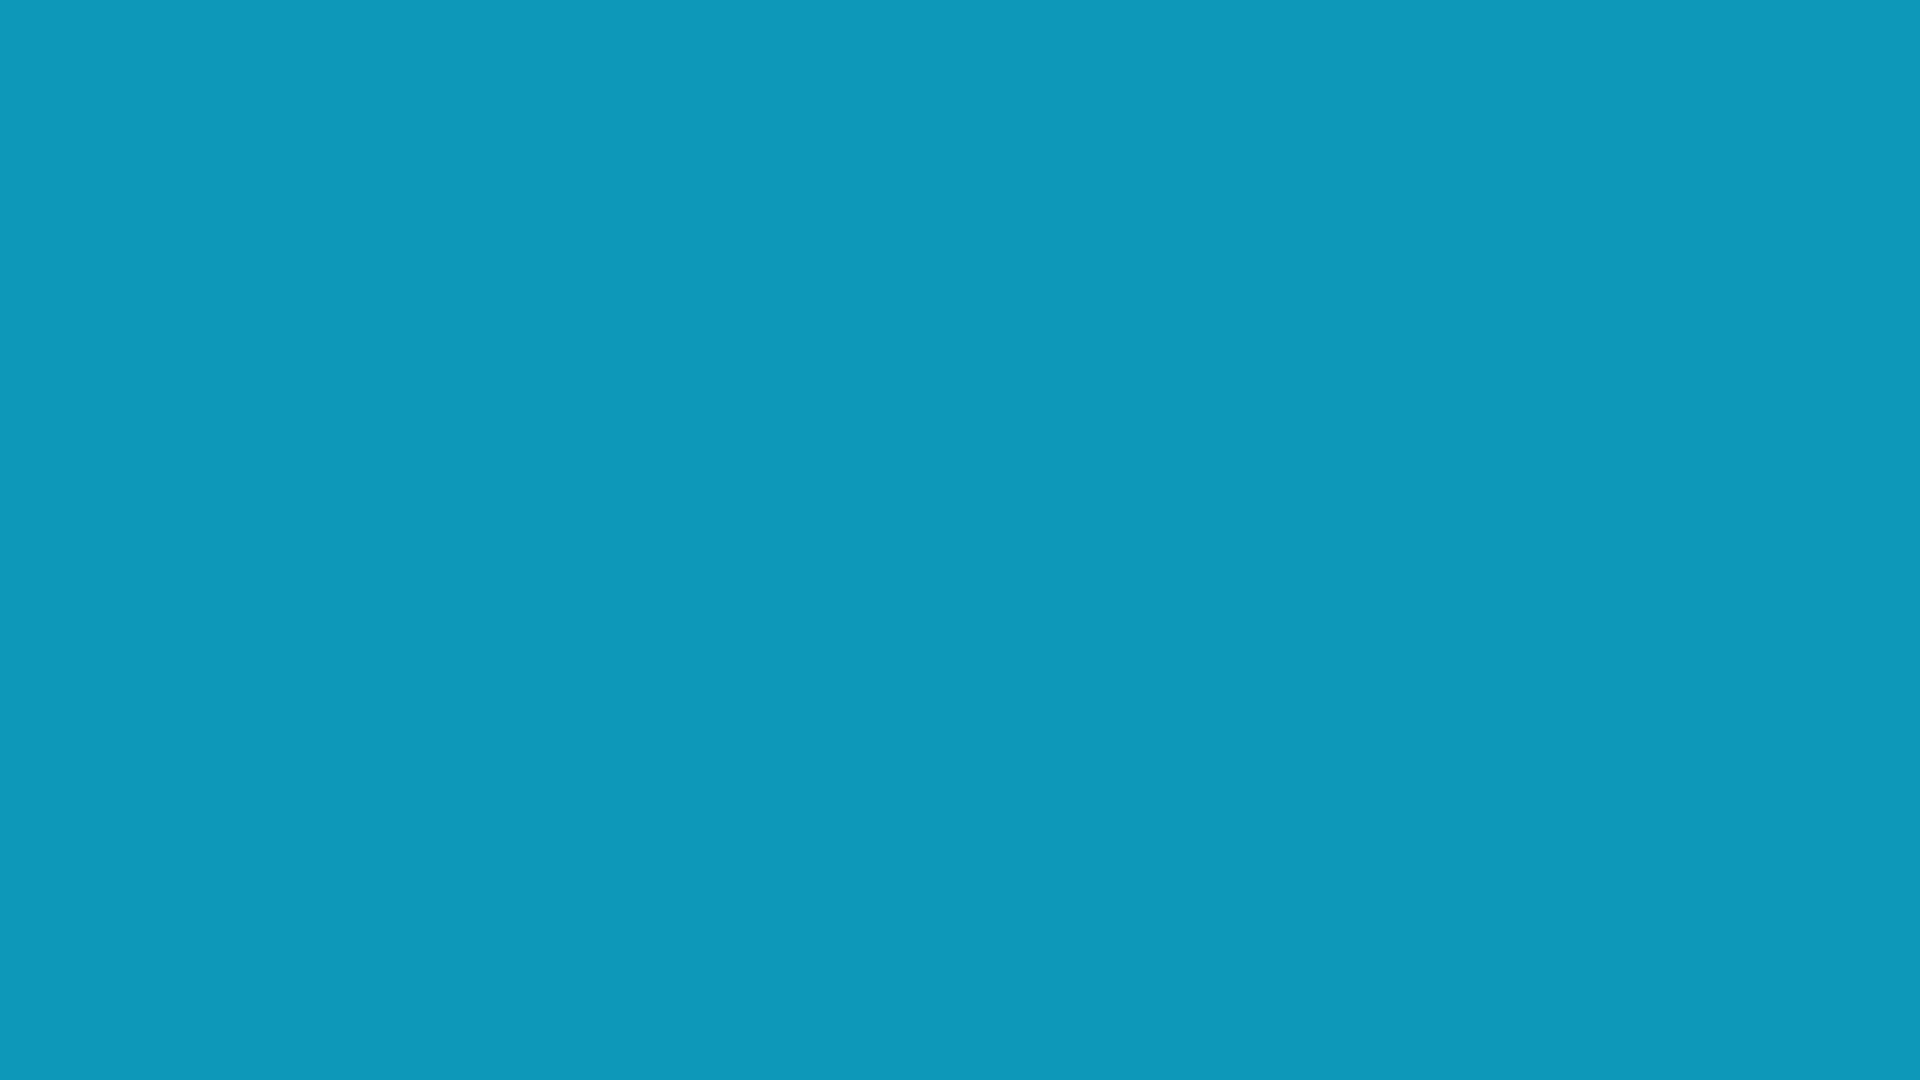 1920x1080 Blue-green Solid Color Background